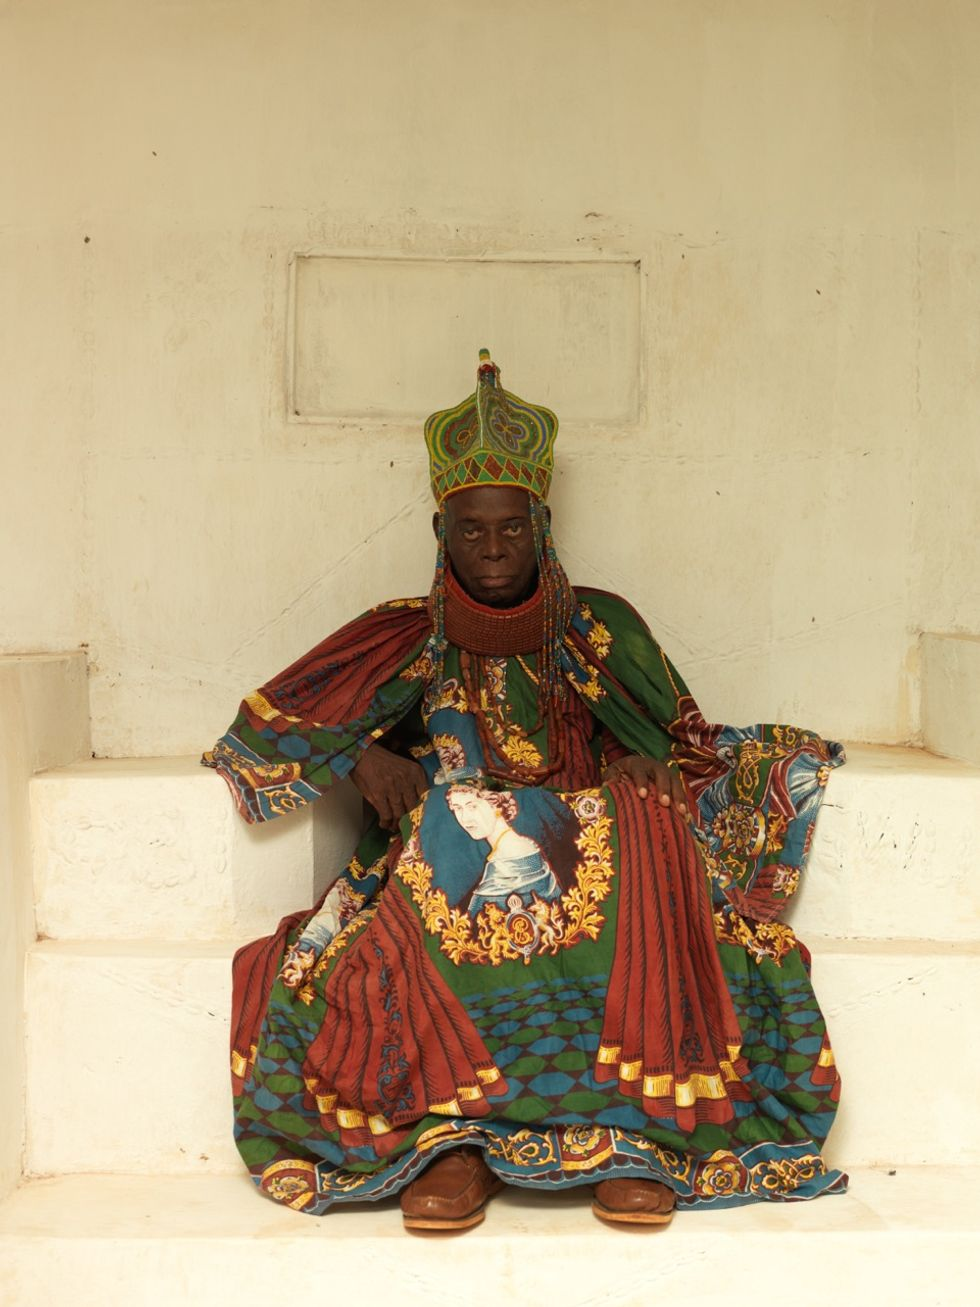 A Fascinating Look Inside the Palaces of Nigeria's Monarchs